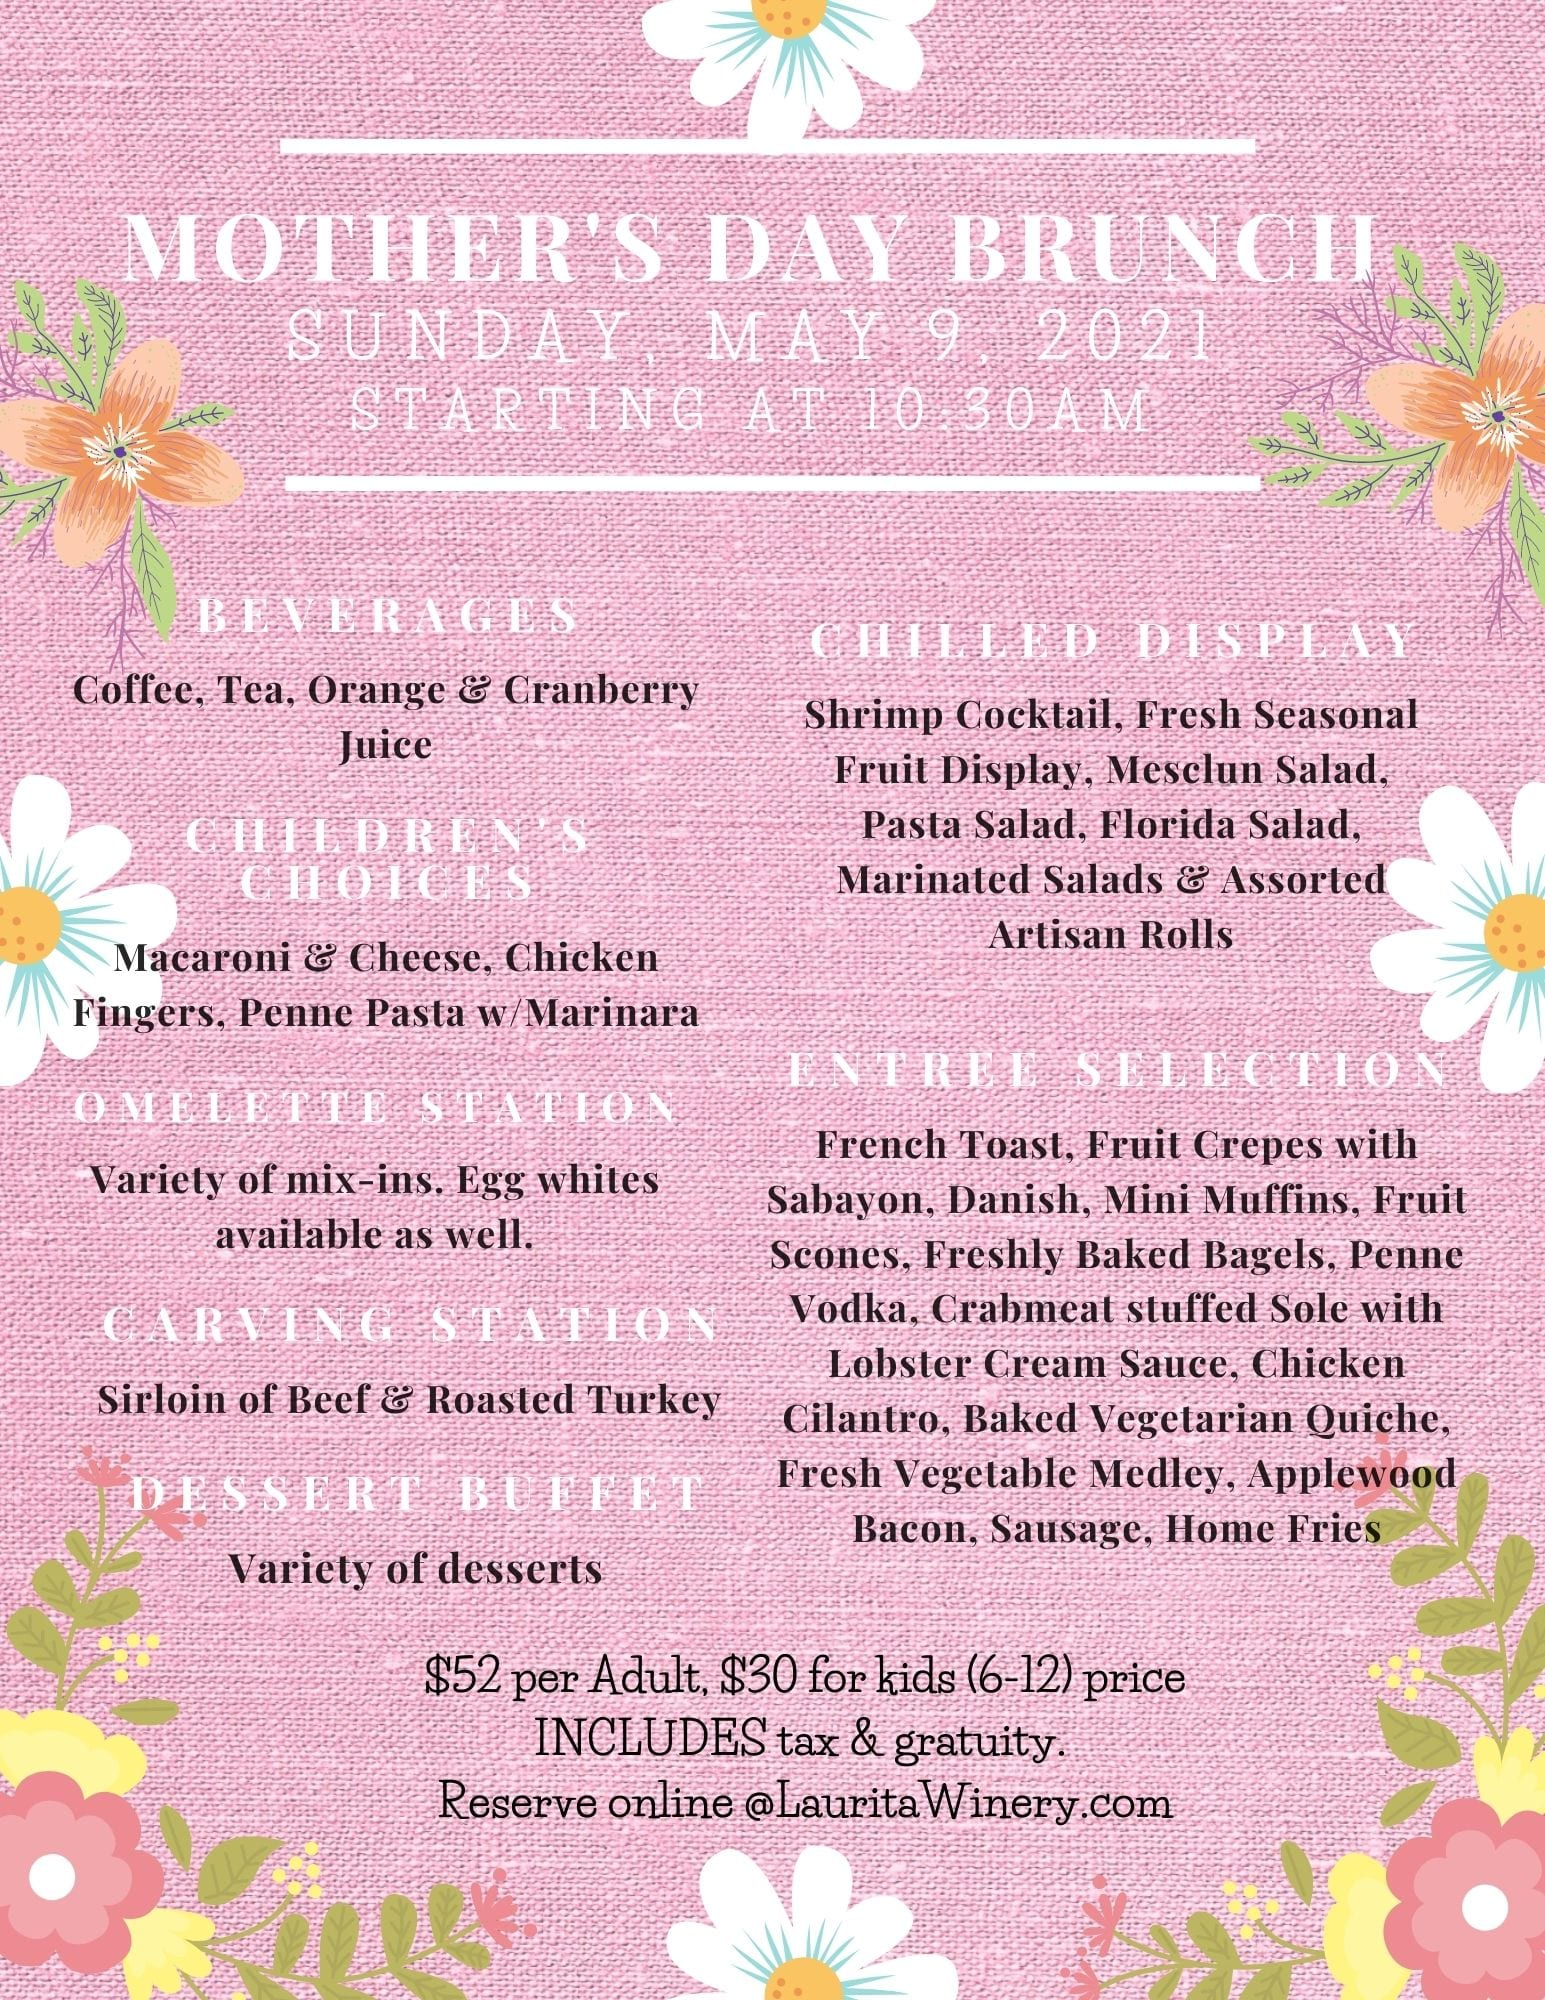 Mothers Day brunch 2021